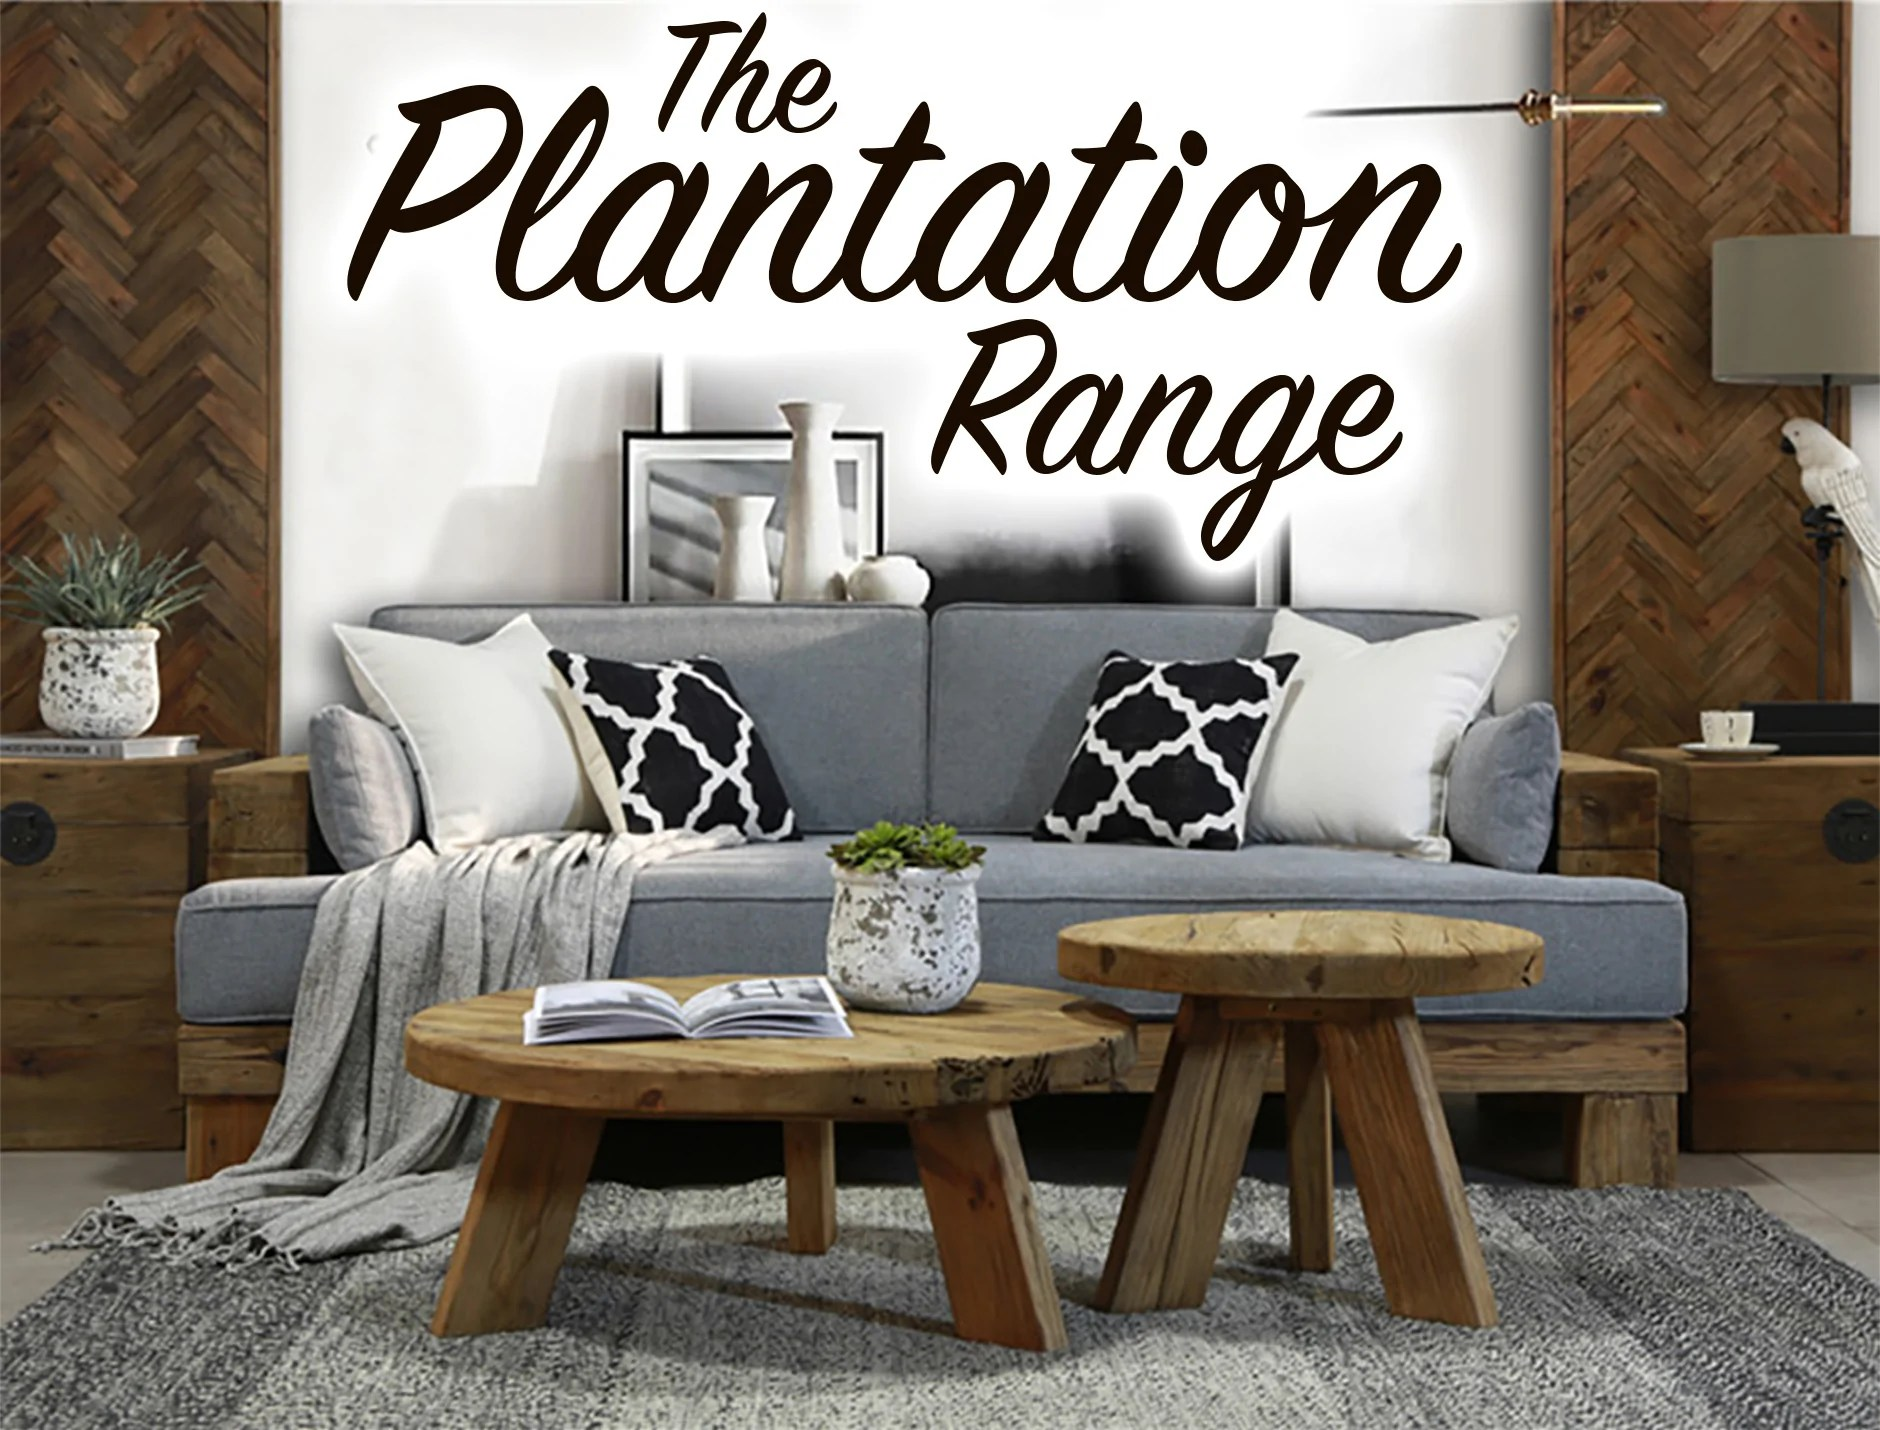 Plantation Furniture Australia Brisbanefurniture Au Brisbane Furniture Solid Timber